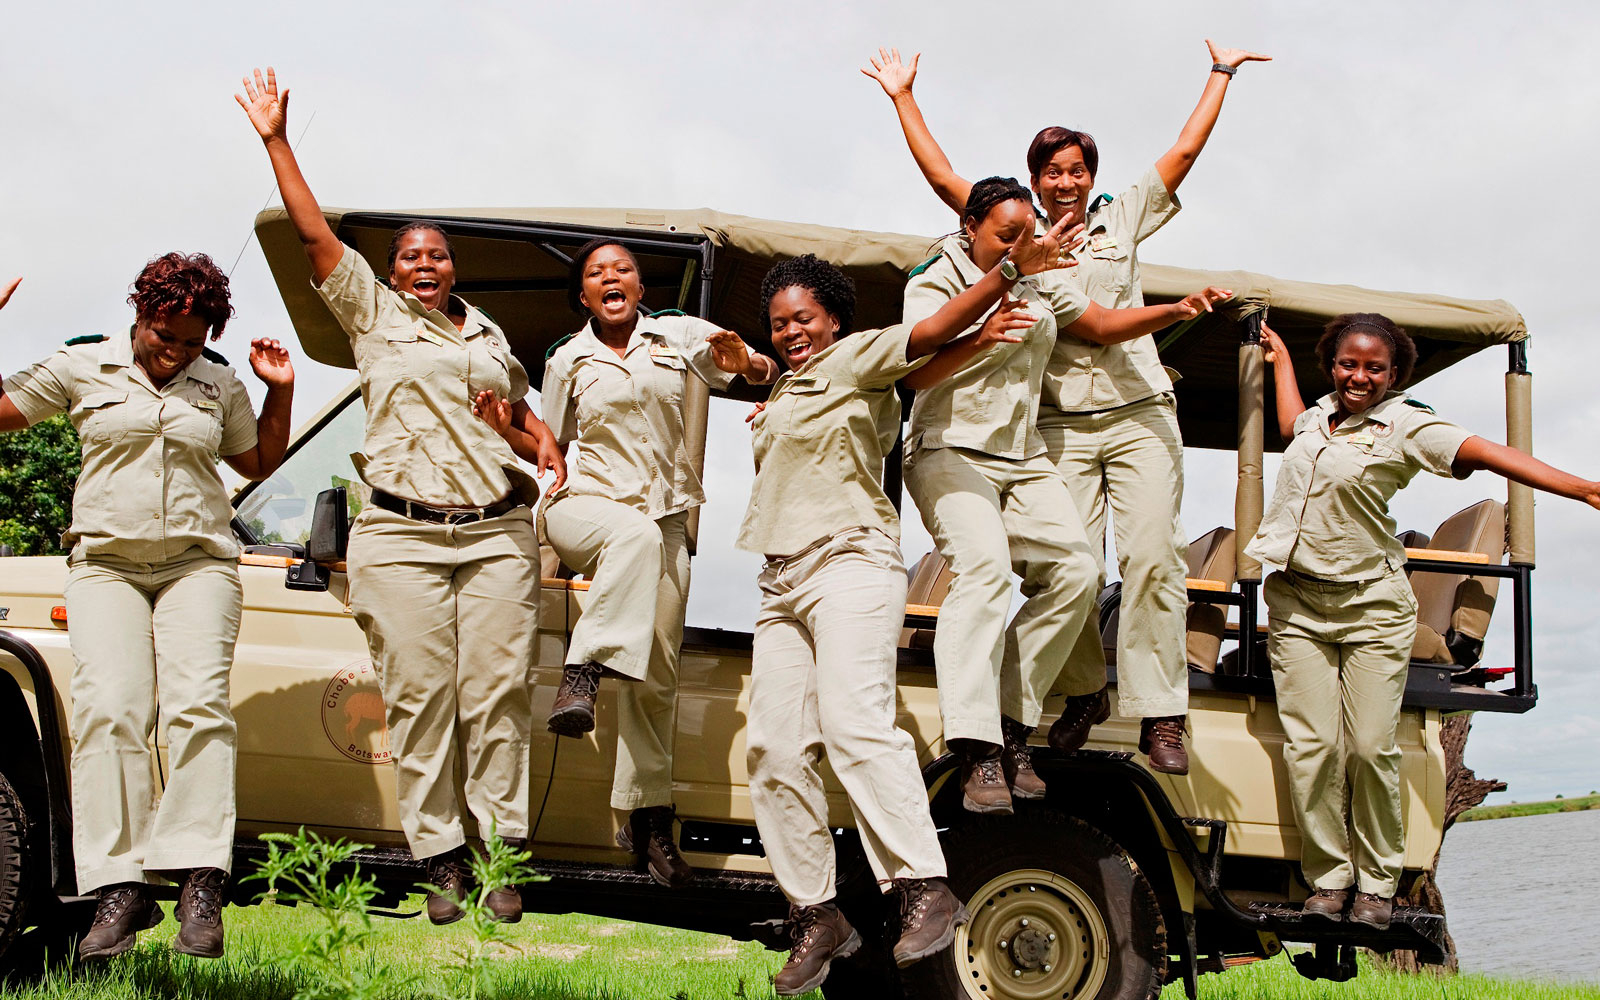 Chobe Angels: Africa's First All-Female Safari Guide Team